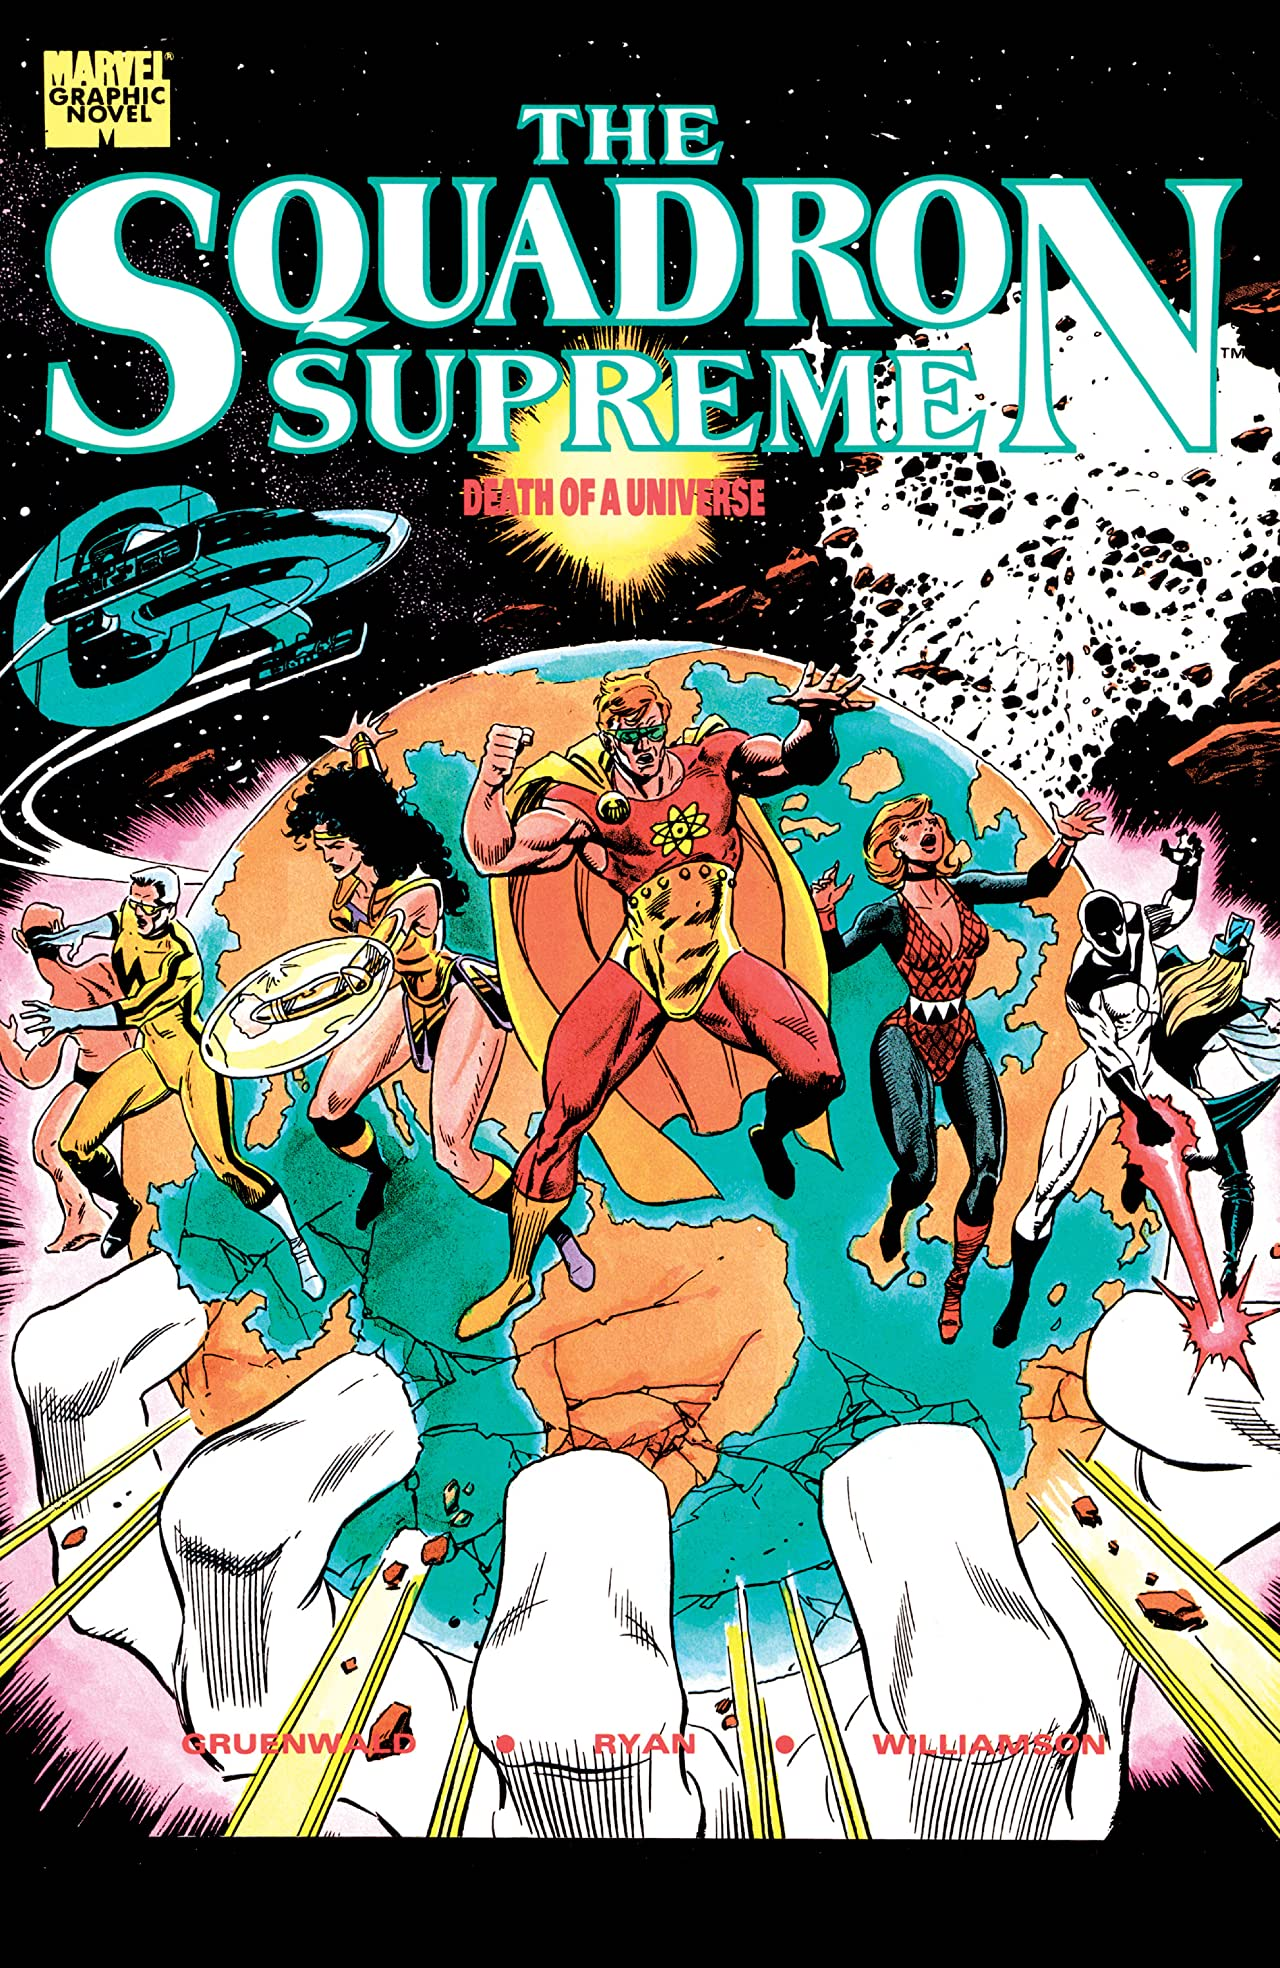 Squadron Supreme: Death of a Universe (1989) #1